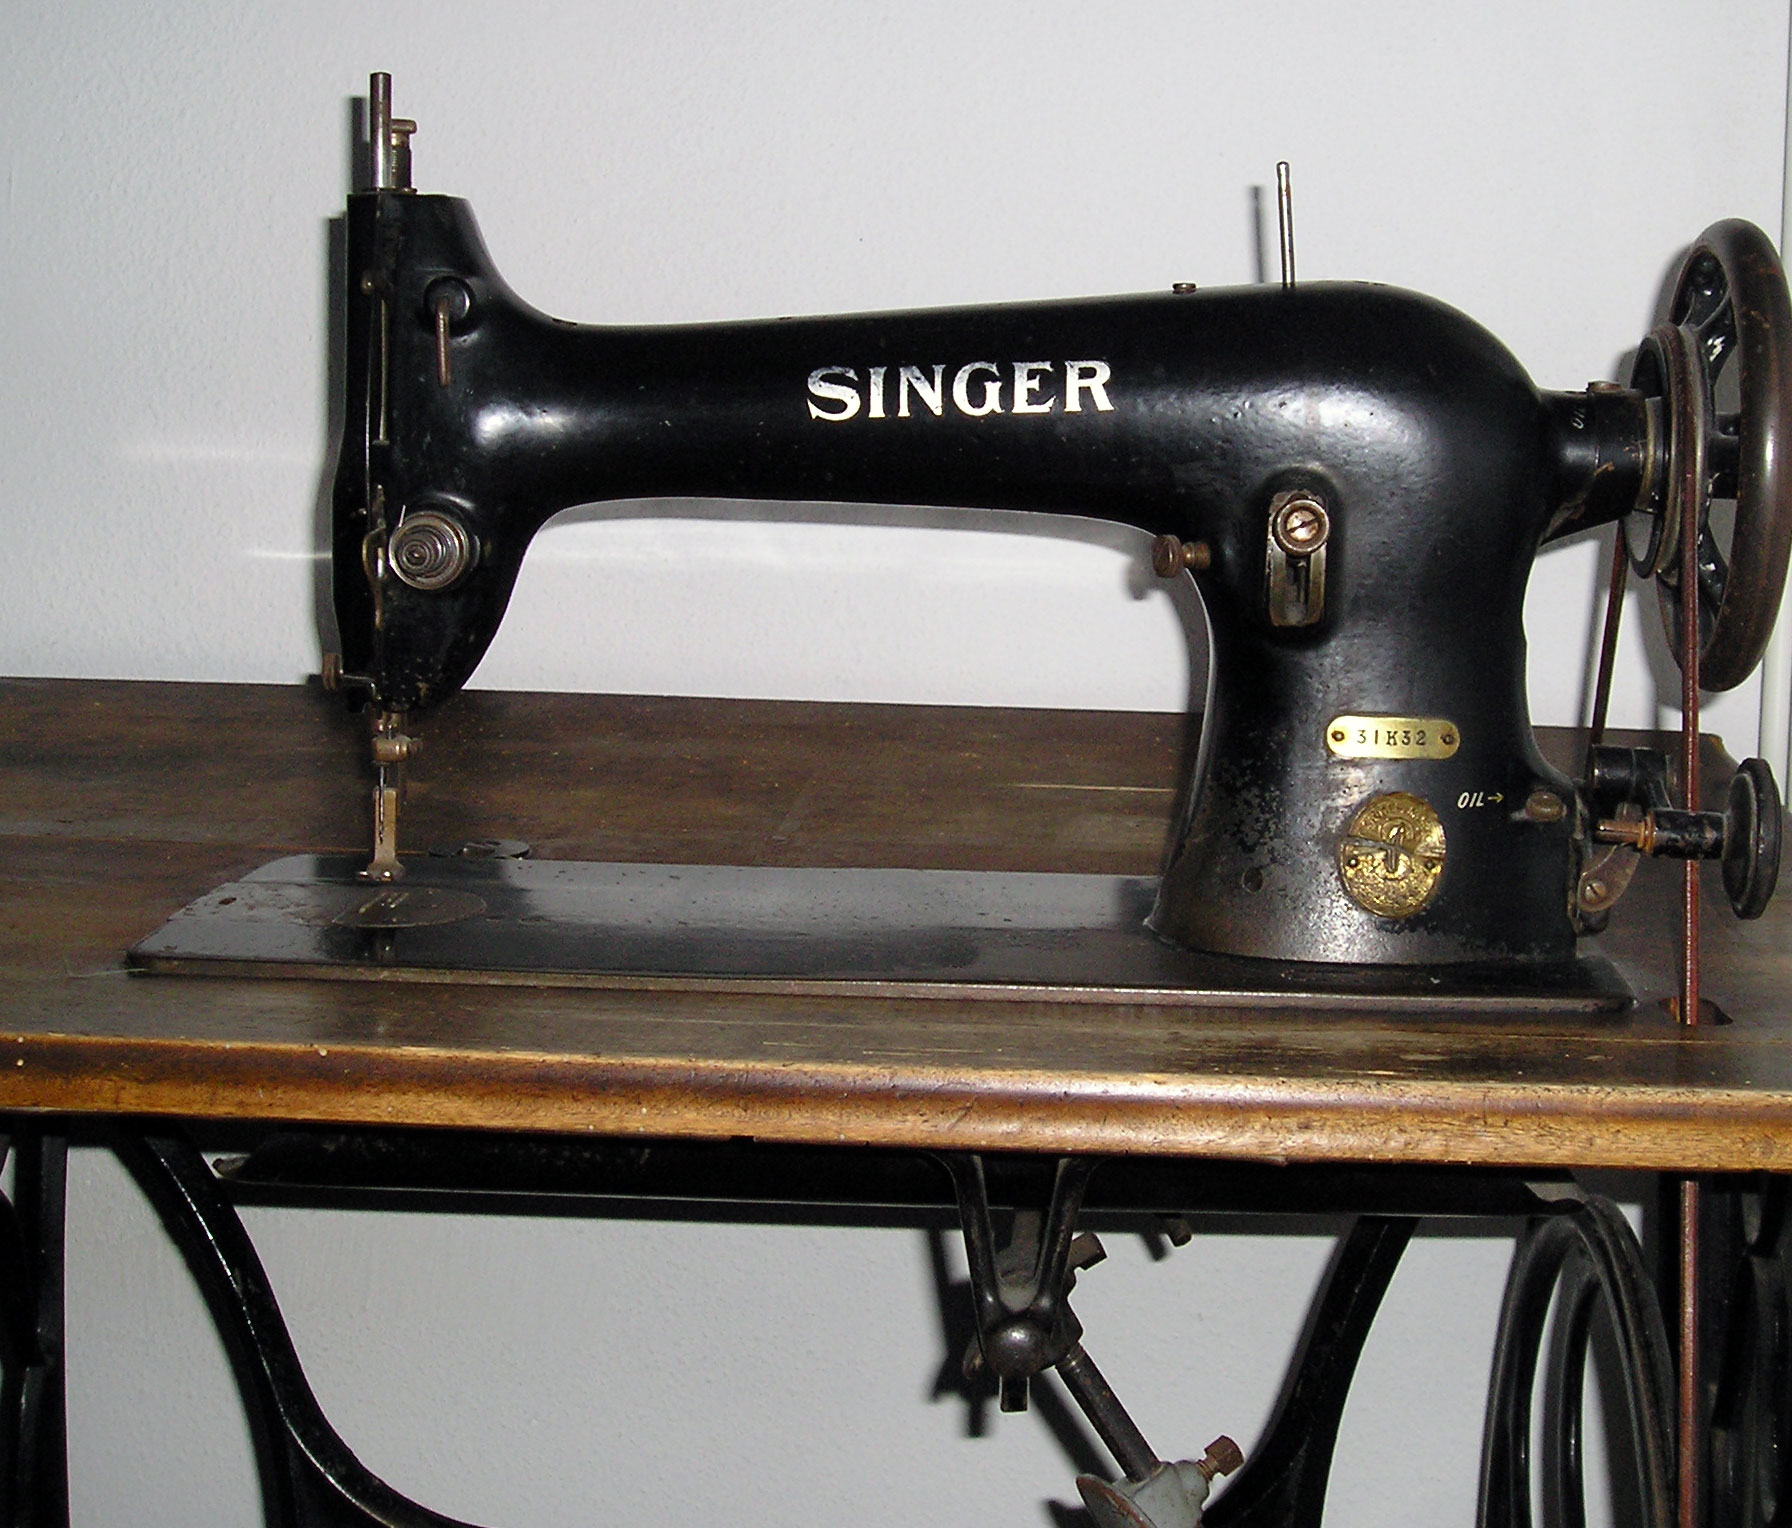 File:Singer sewing machine detail1.jpg - Wikipedia, the free ...